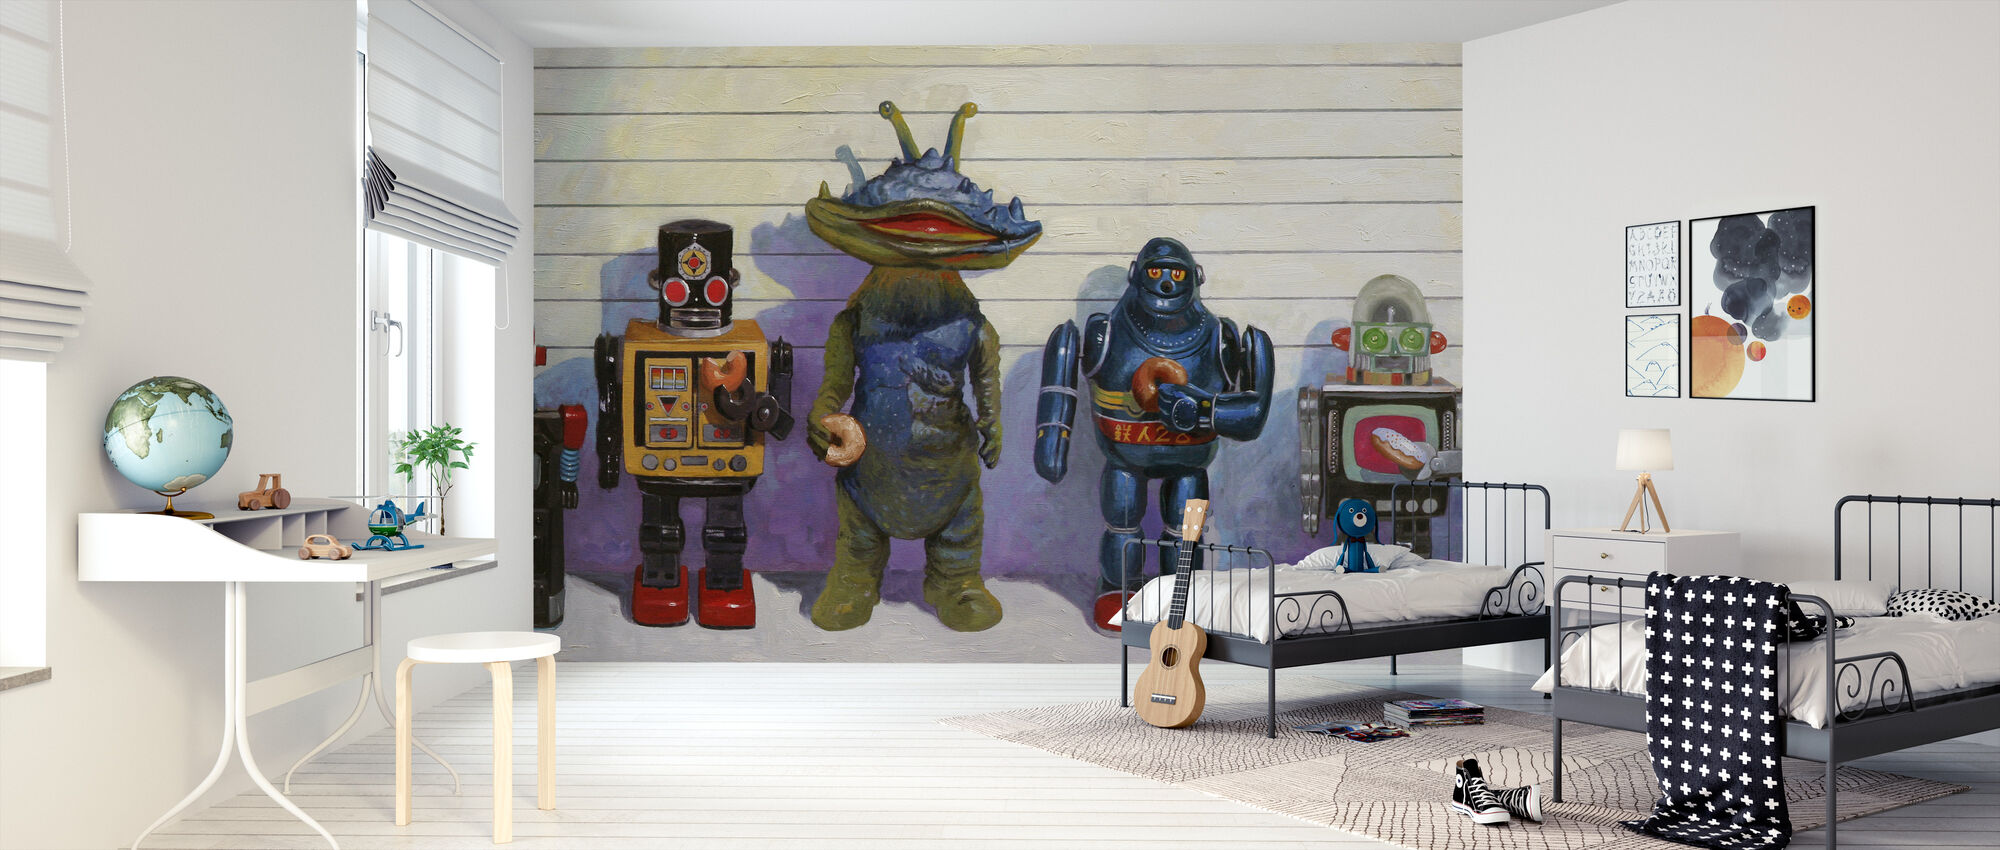 Line Up - Wallpaper - Kids Room